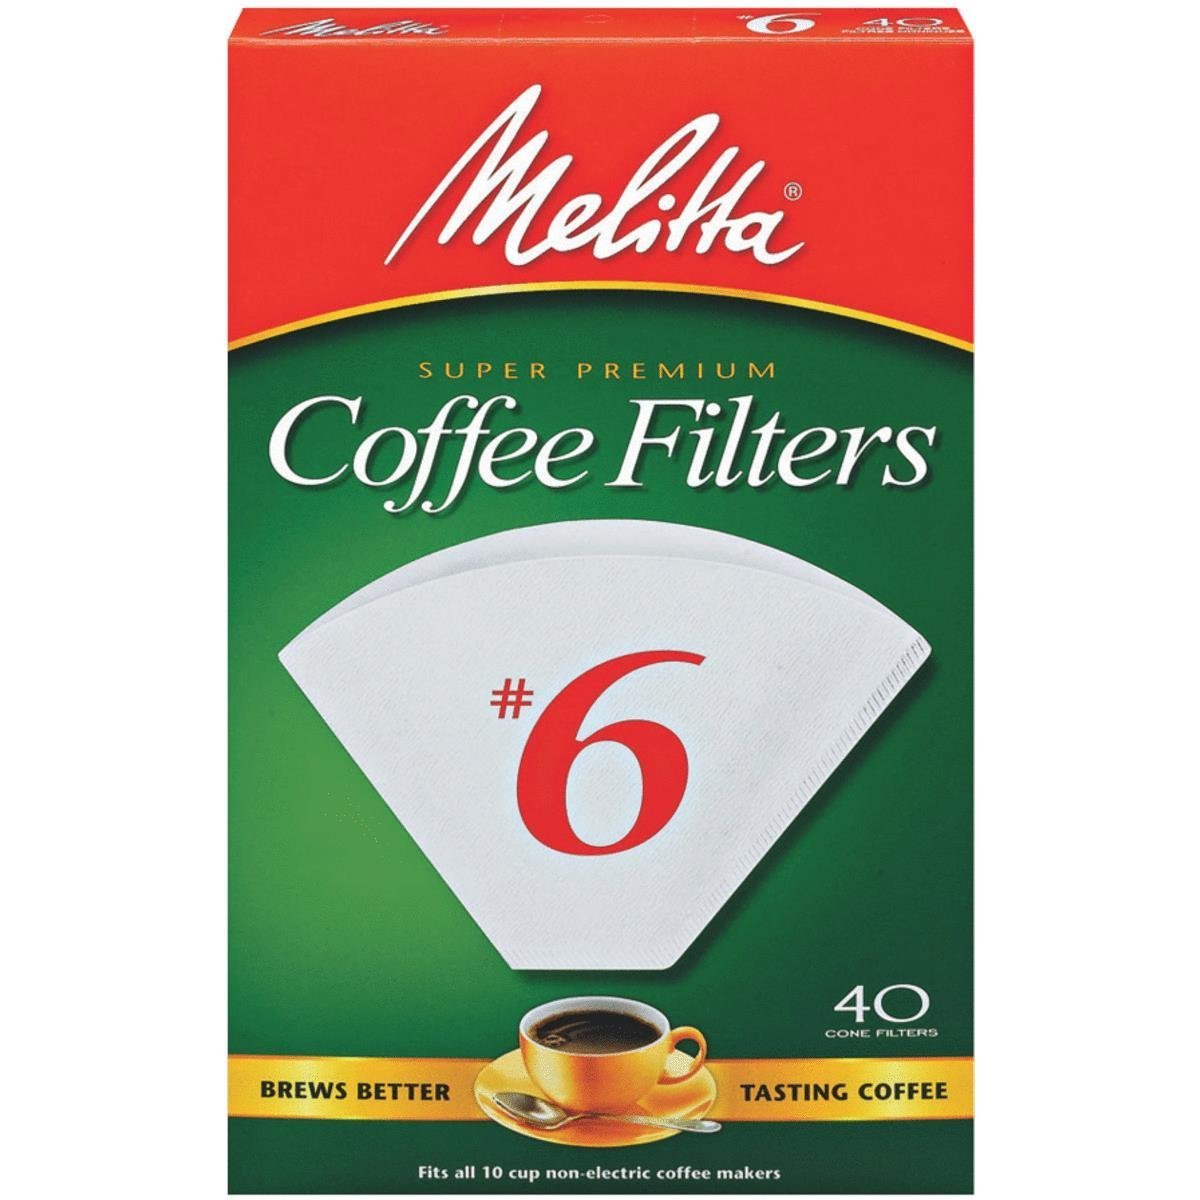 Melitta Cone Coffee Filters, White, No. 6, 40-Count Filters Pack of 2 (80 Filters Total)